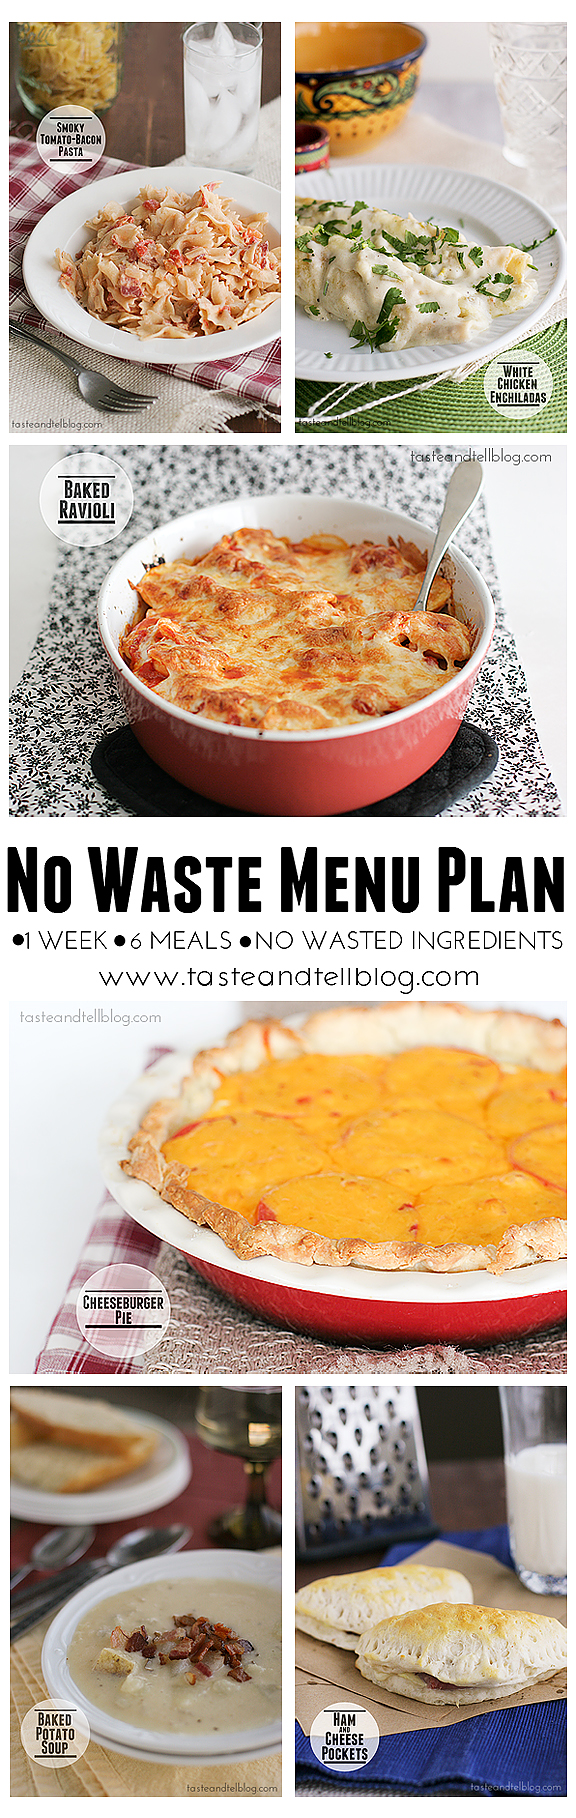 No Waste Menu Plan - 1 week, 6 recipes, no leftover ingredients | www.tasteandtellblog.com #menuplan #recipe #grocerylist